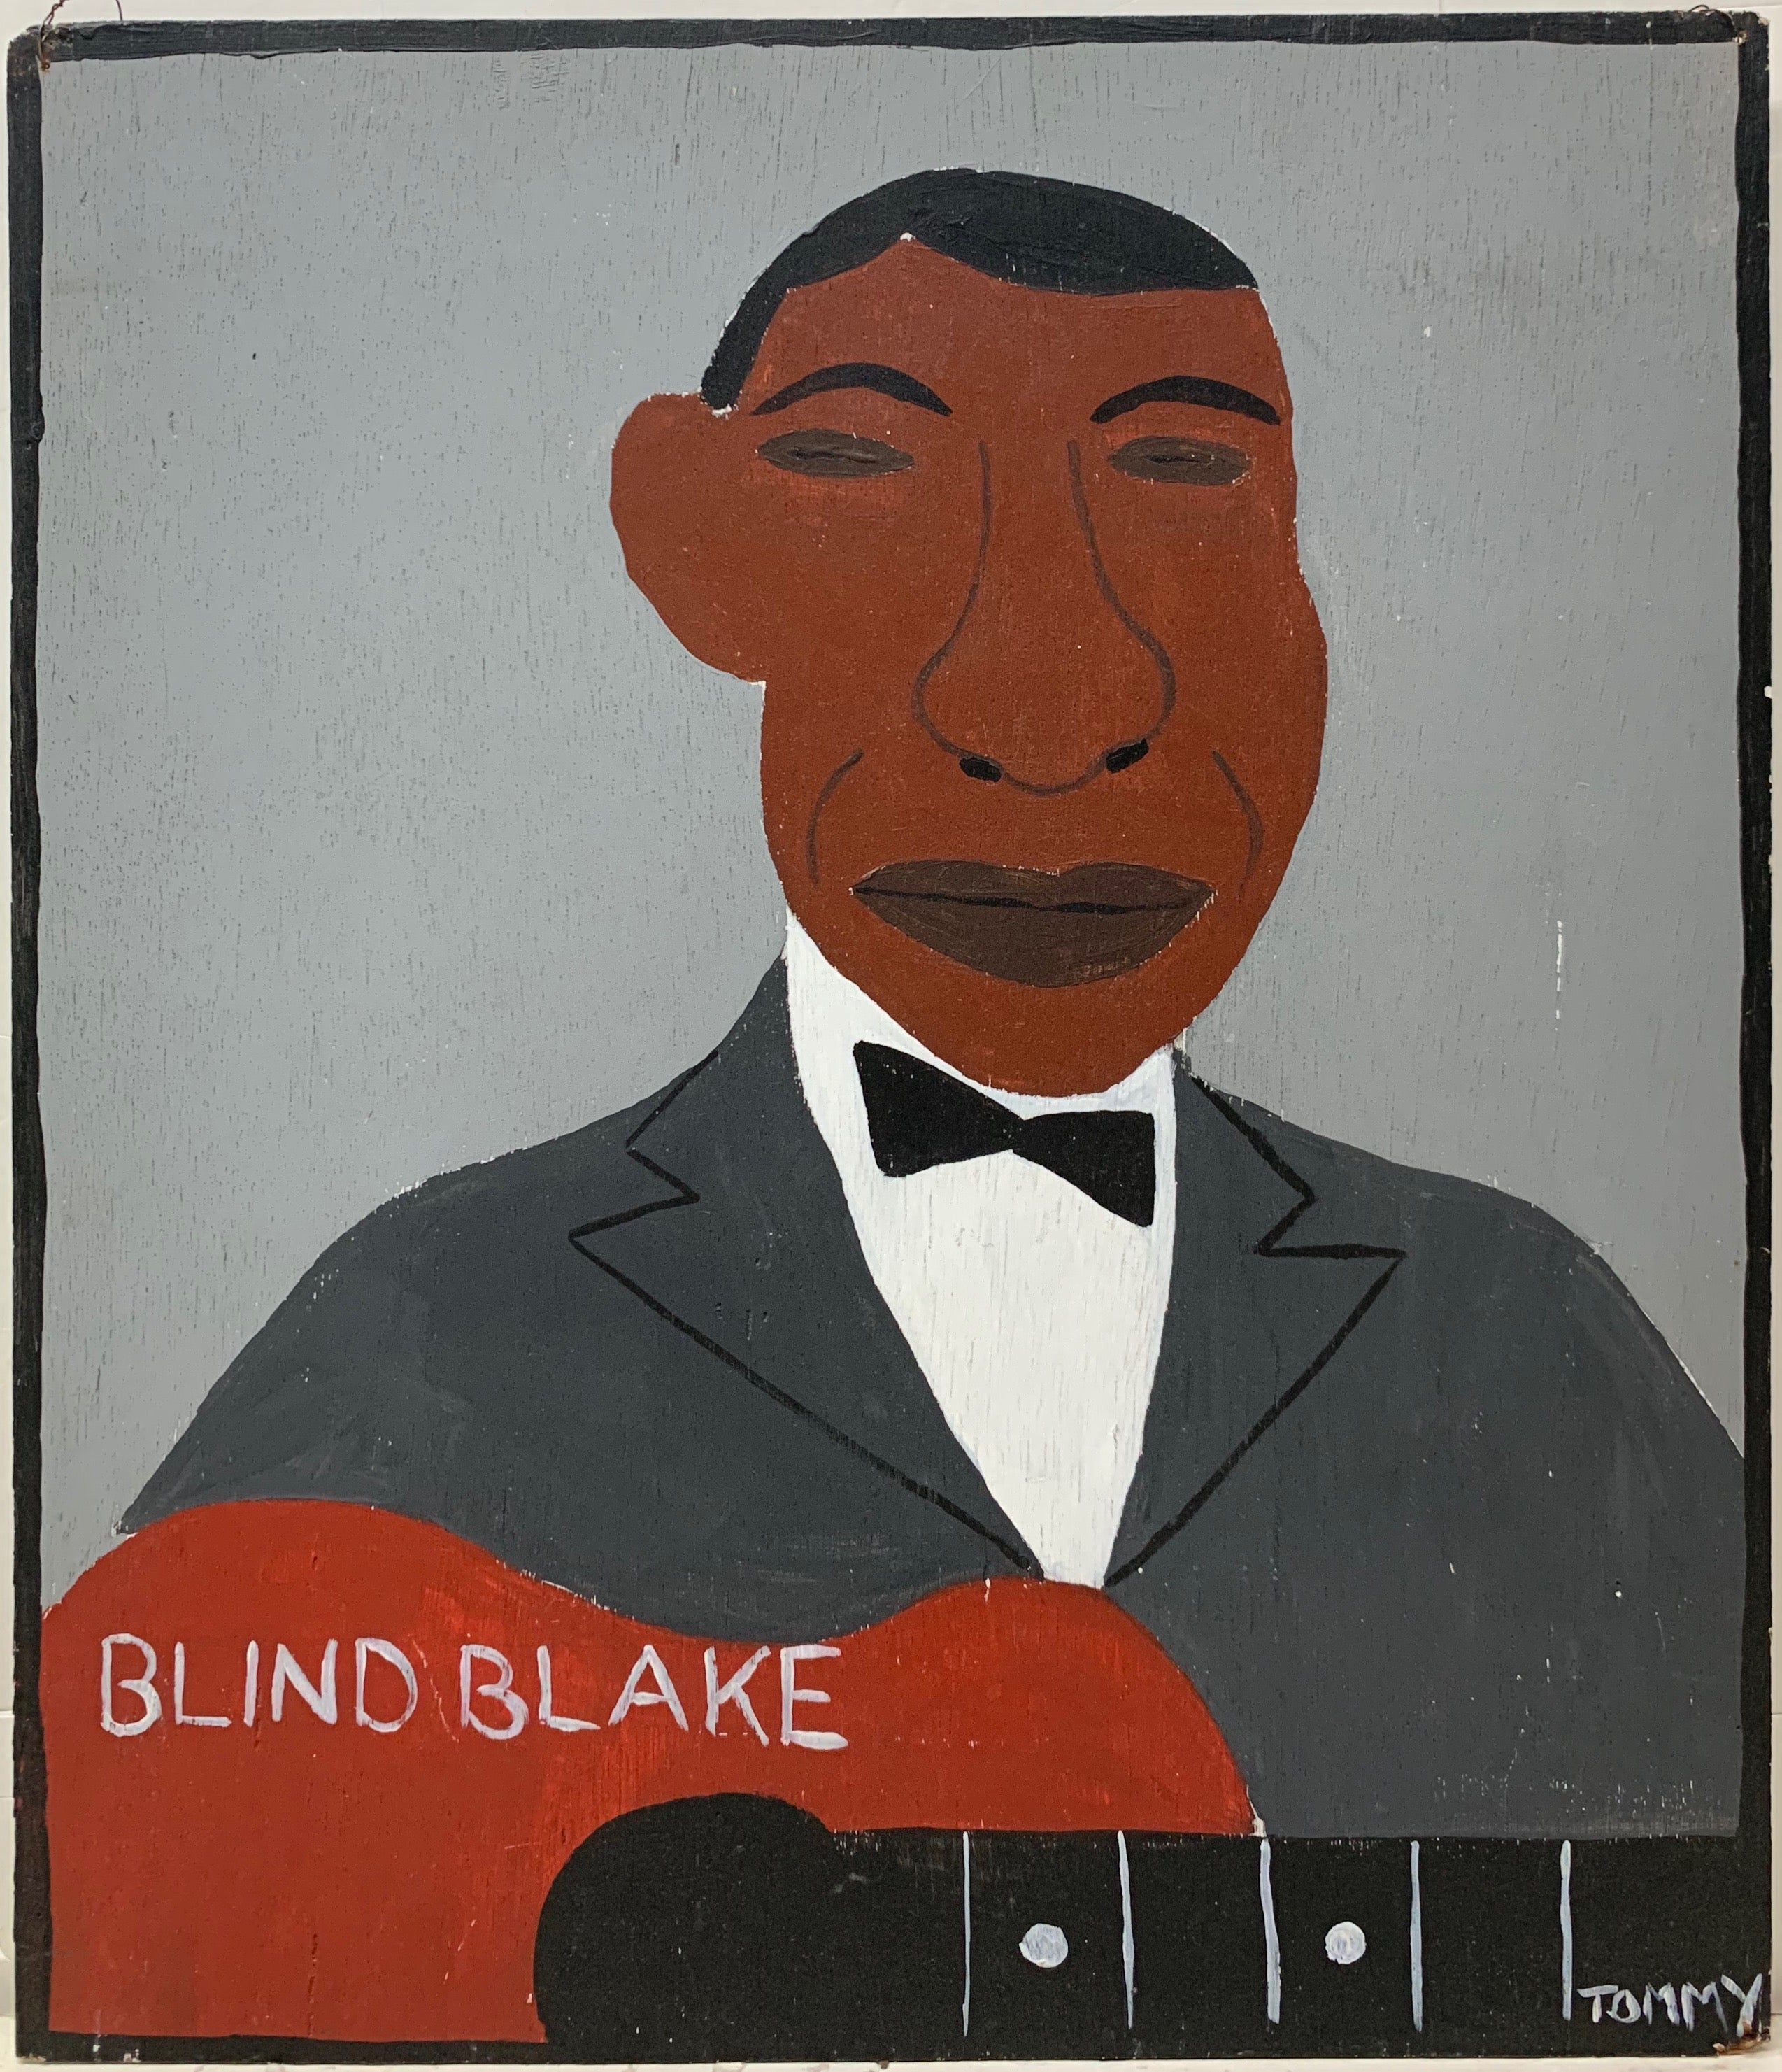 Tommy Cheng portrait of Blink Blake with a guitar and in a gray suit.